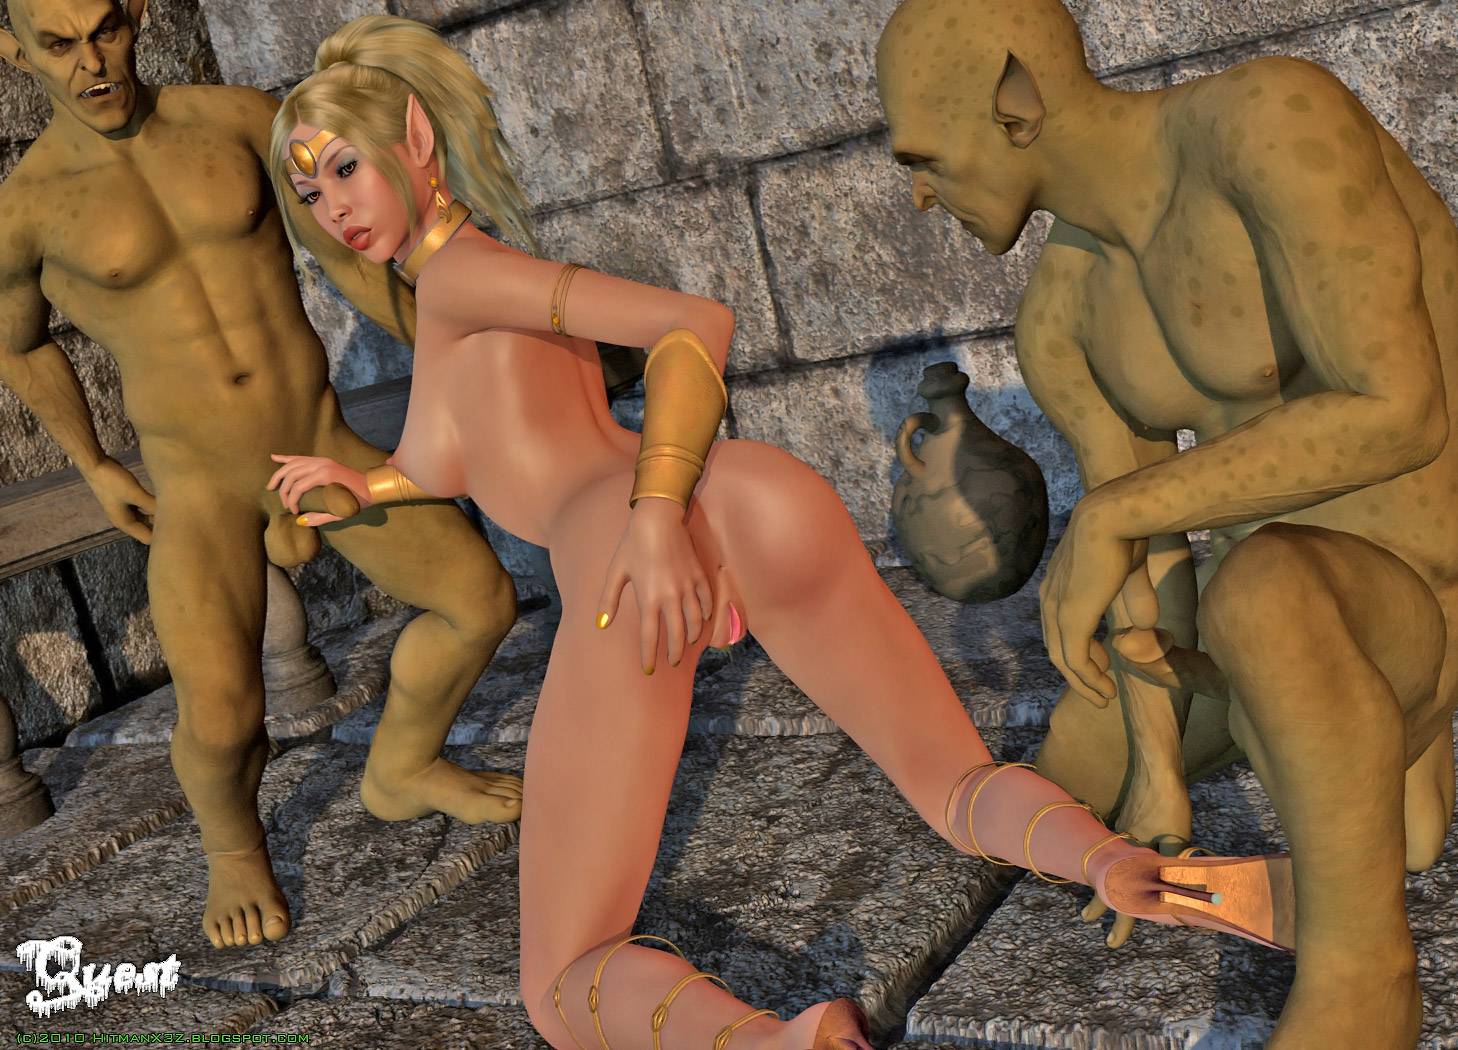 Troll sex toon erotic download